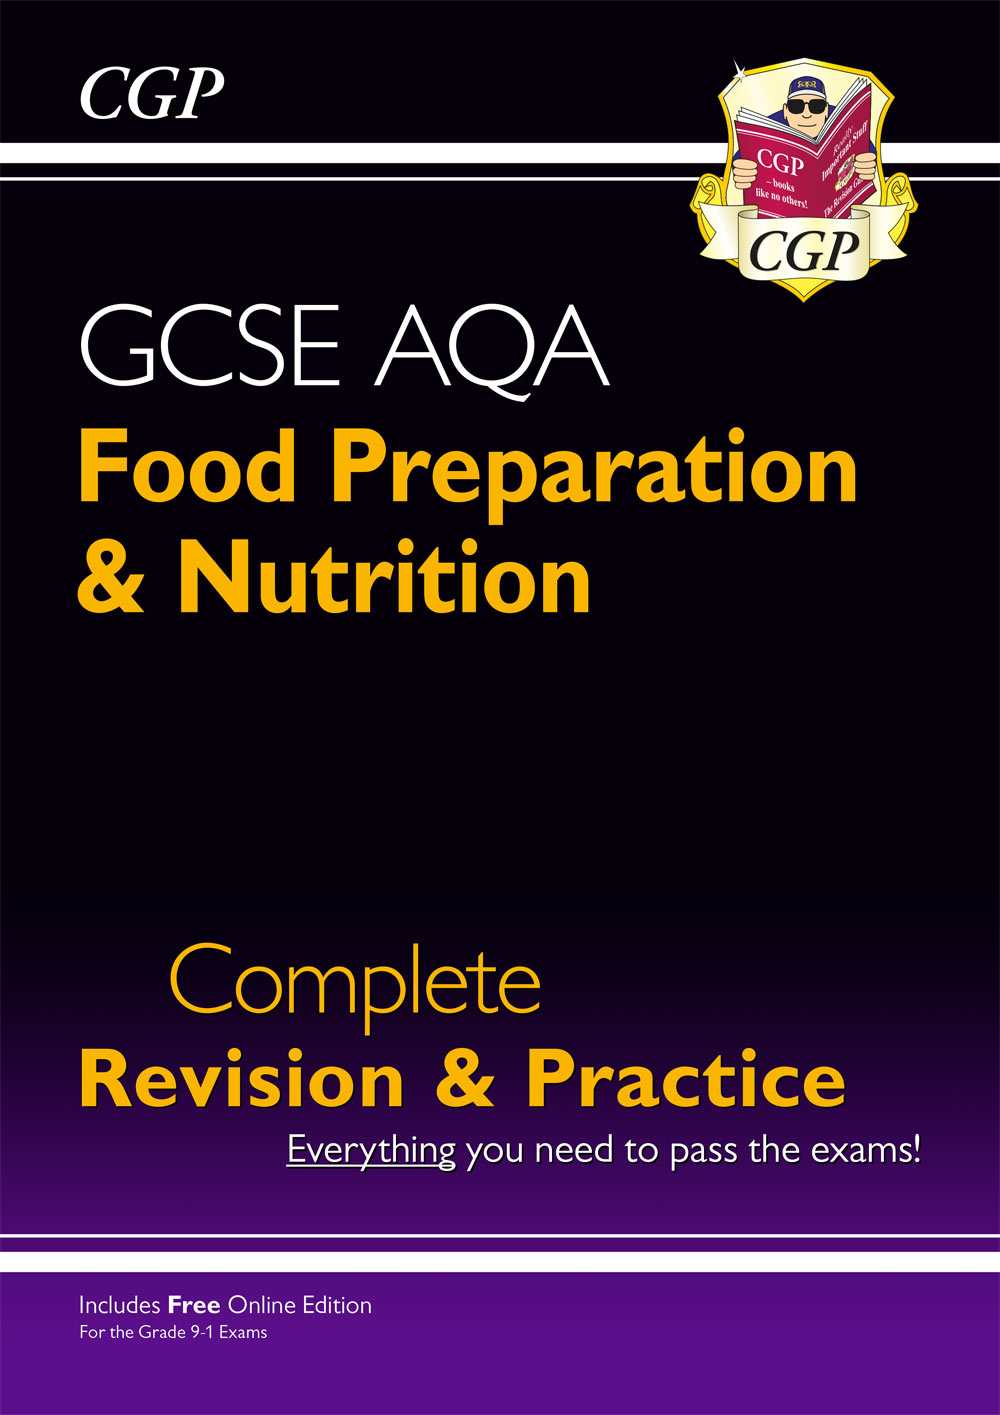 FNAS41 - 9-1 GCSE Food Preparation & Nutrition AQA Complete Revision & Practice (with Online Edn)